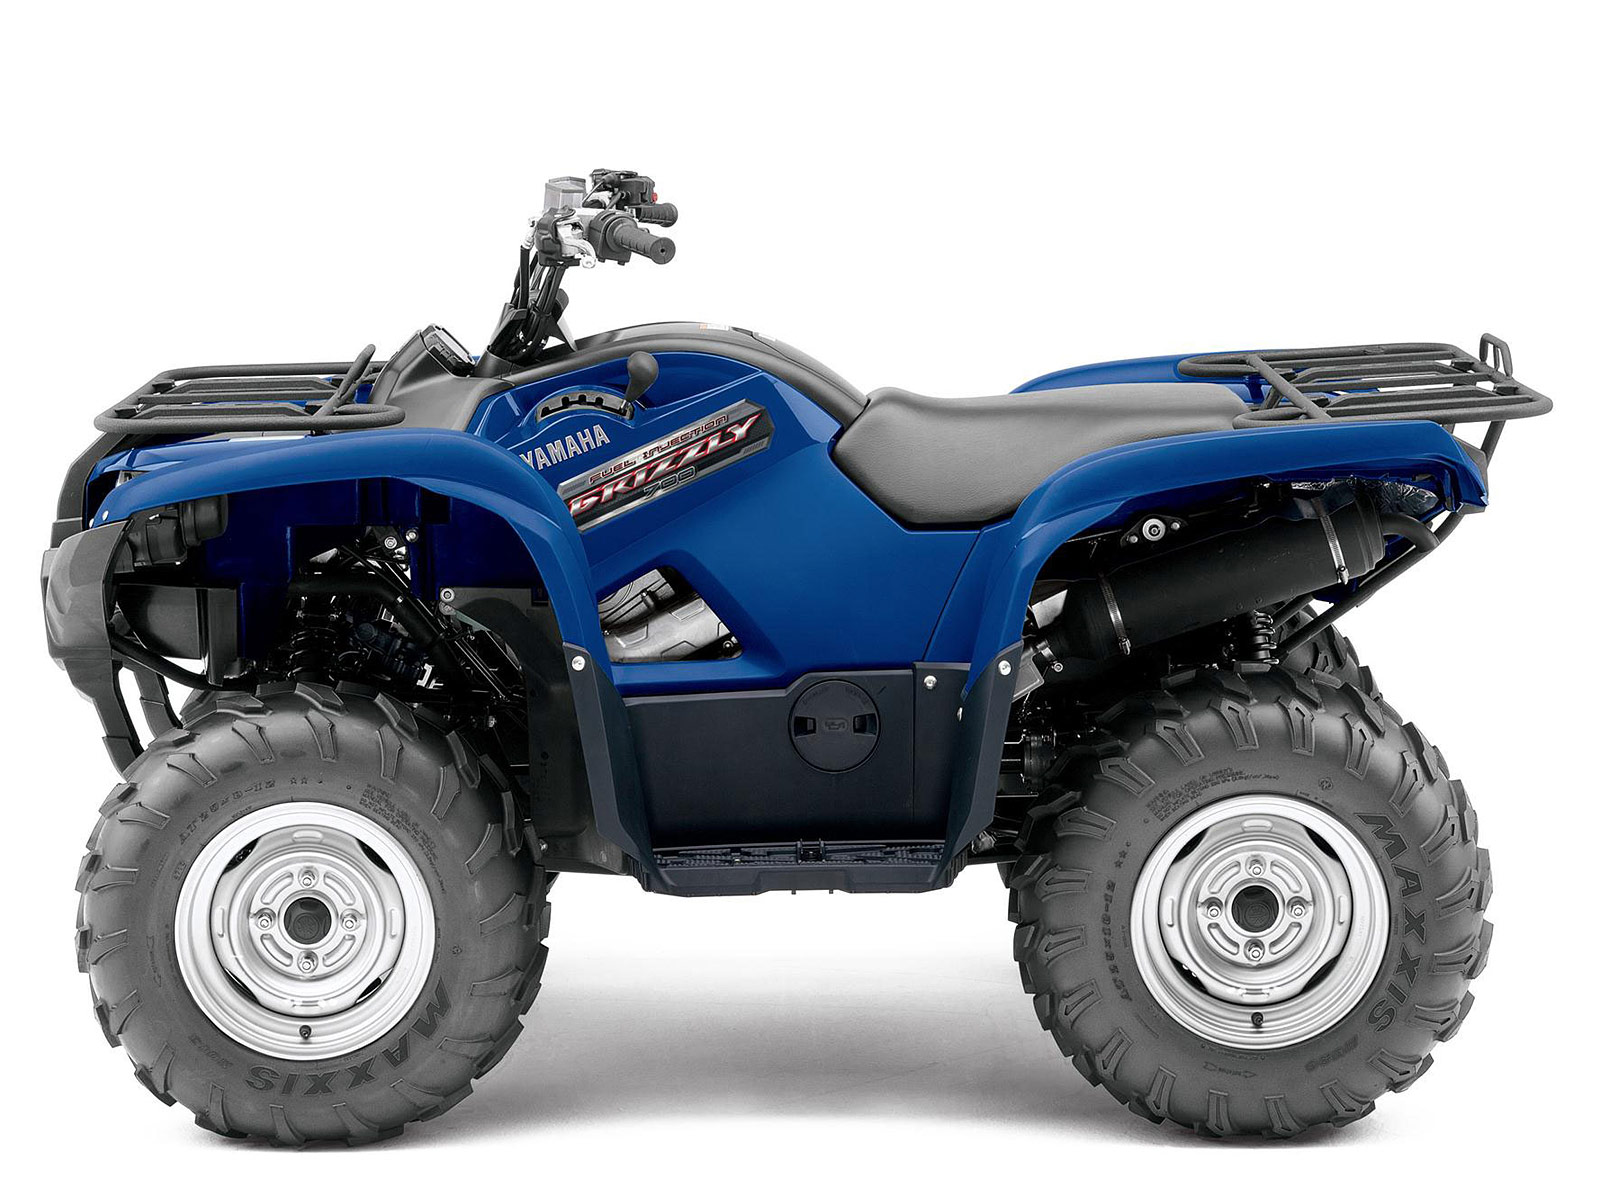 small resolution of 2013 grizzly 700 fi auto 4x4 yamaha atv pictures 480x360 pixels